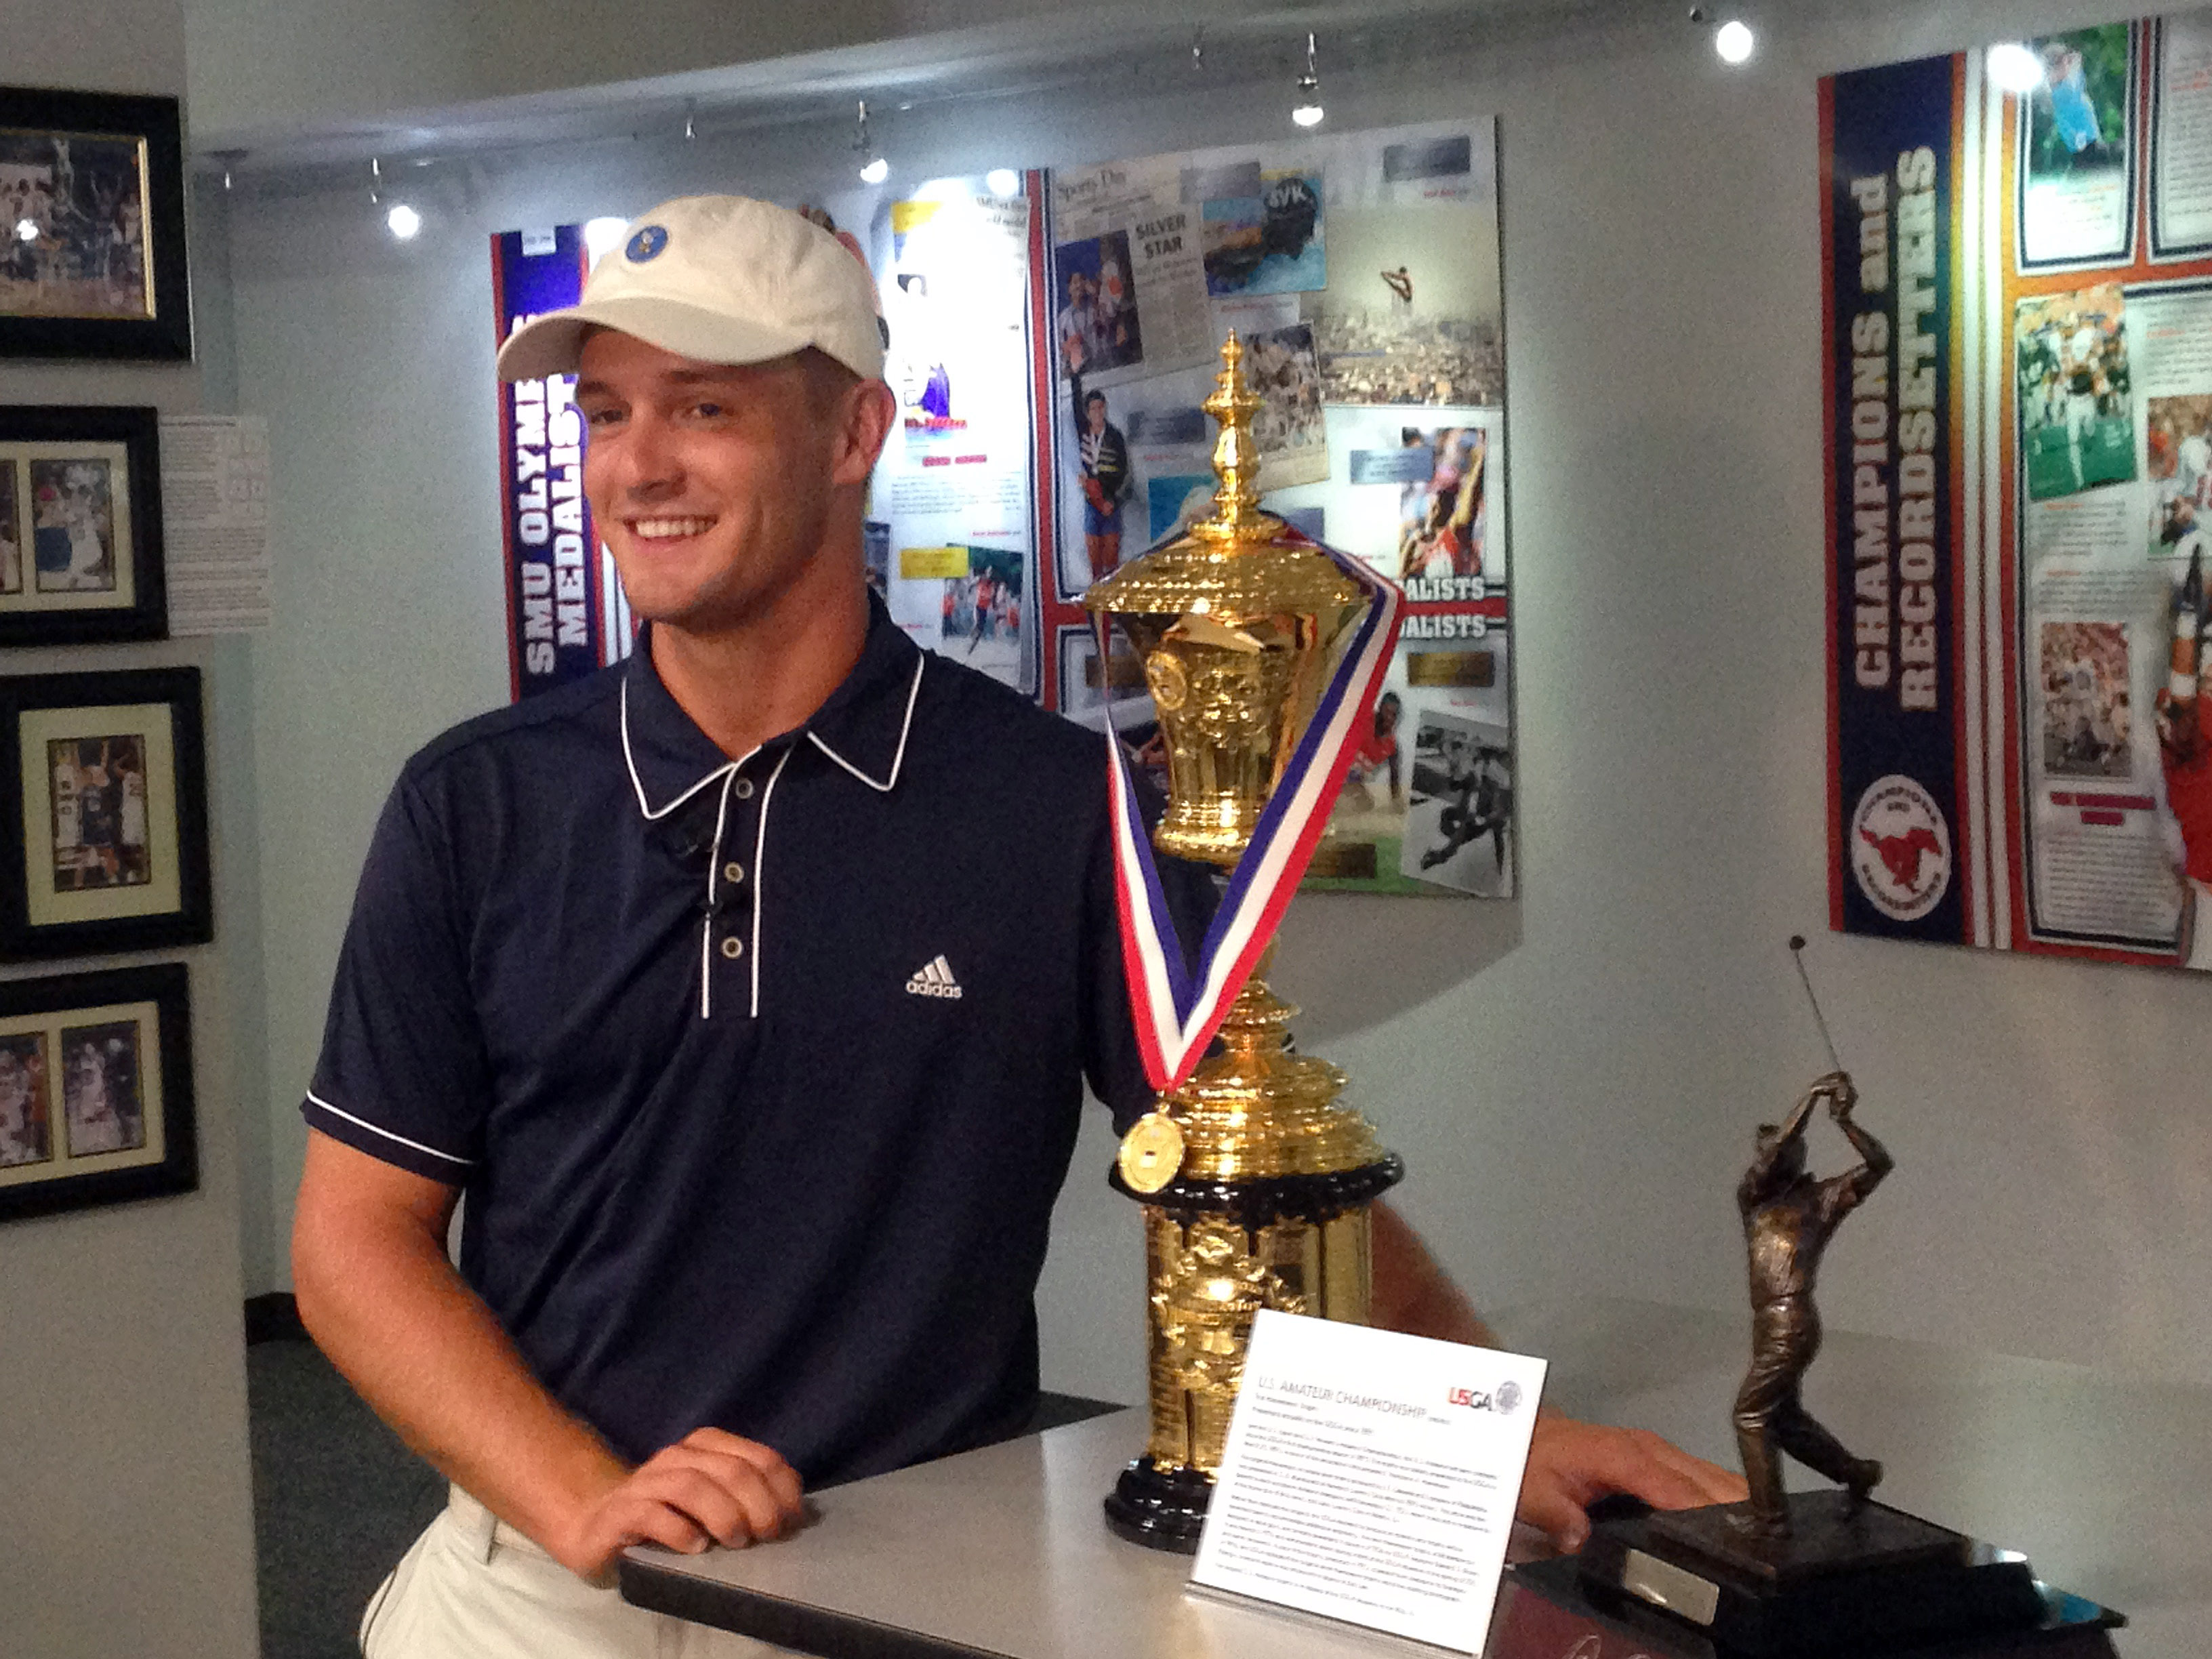 ADVANCE FOR WEEKEND EDITIONS, SEPT. 12-13 - Bryson DeChambeau is photographed with the U.S. Amateur Championship trophy at SMU's athletic Hall of Fame on Aug. 26, 2015 in Dallas. DeChambeau is a physics major with a unique mental approach to golf, and iro